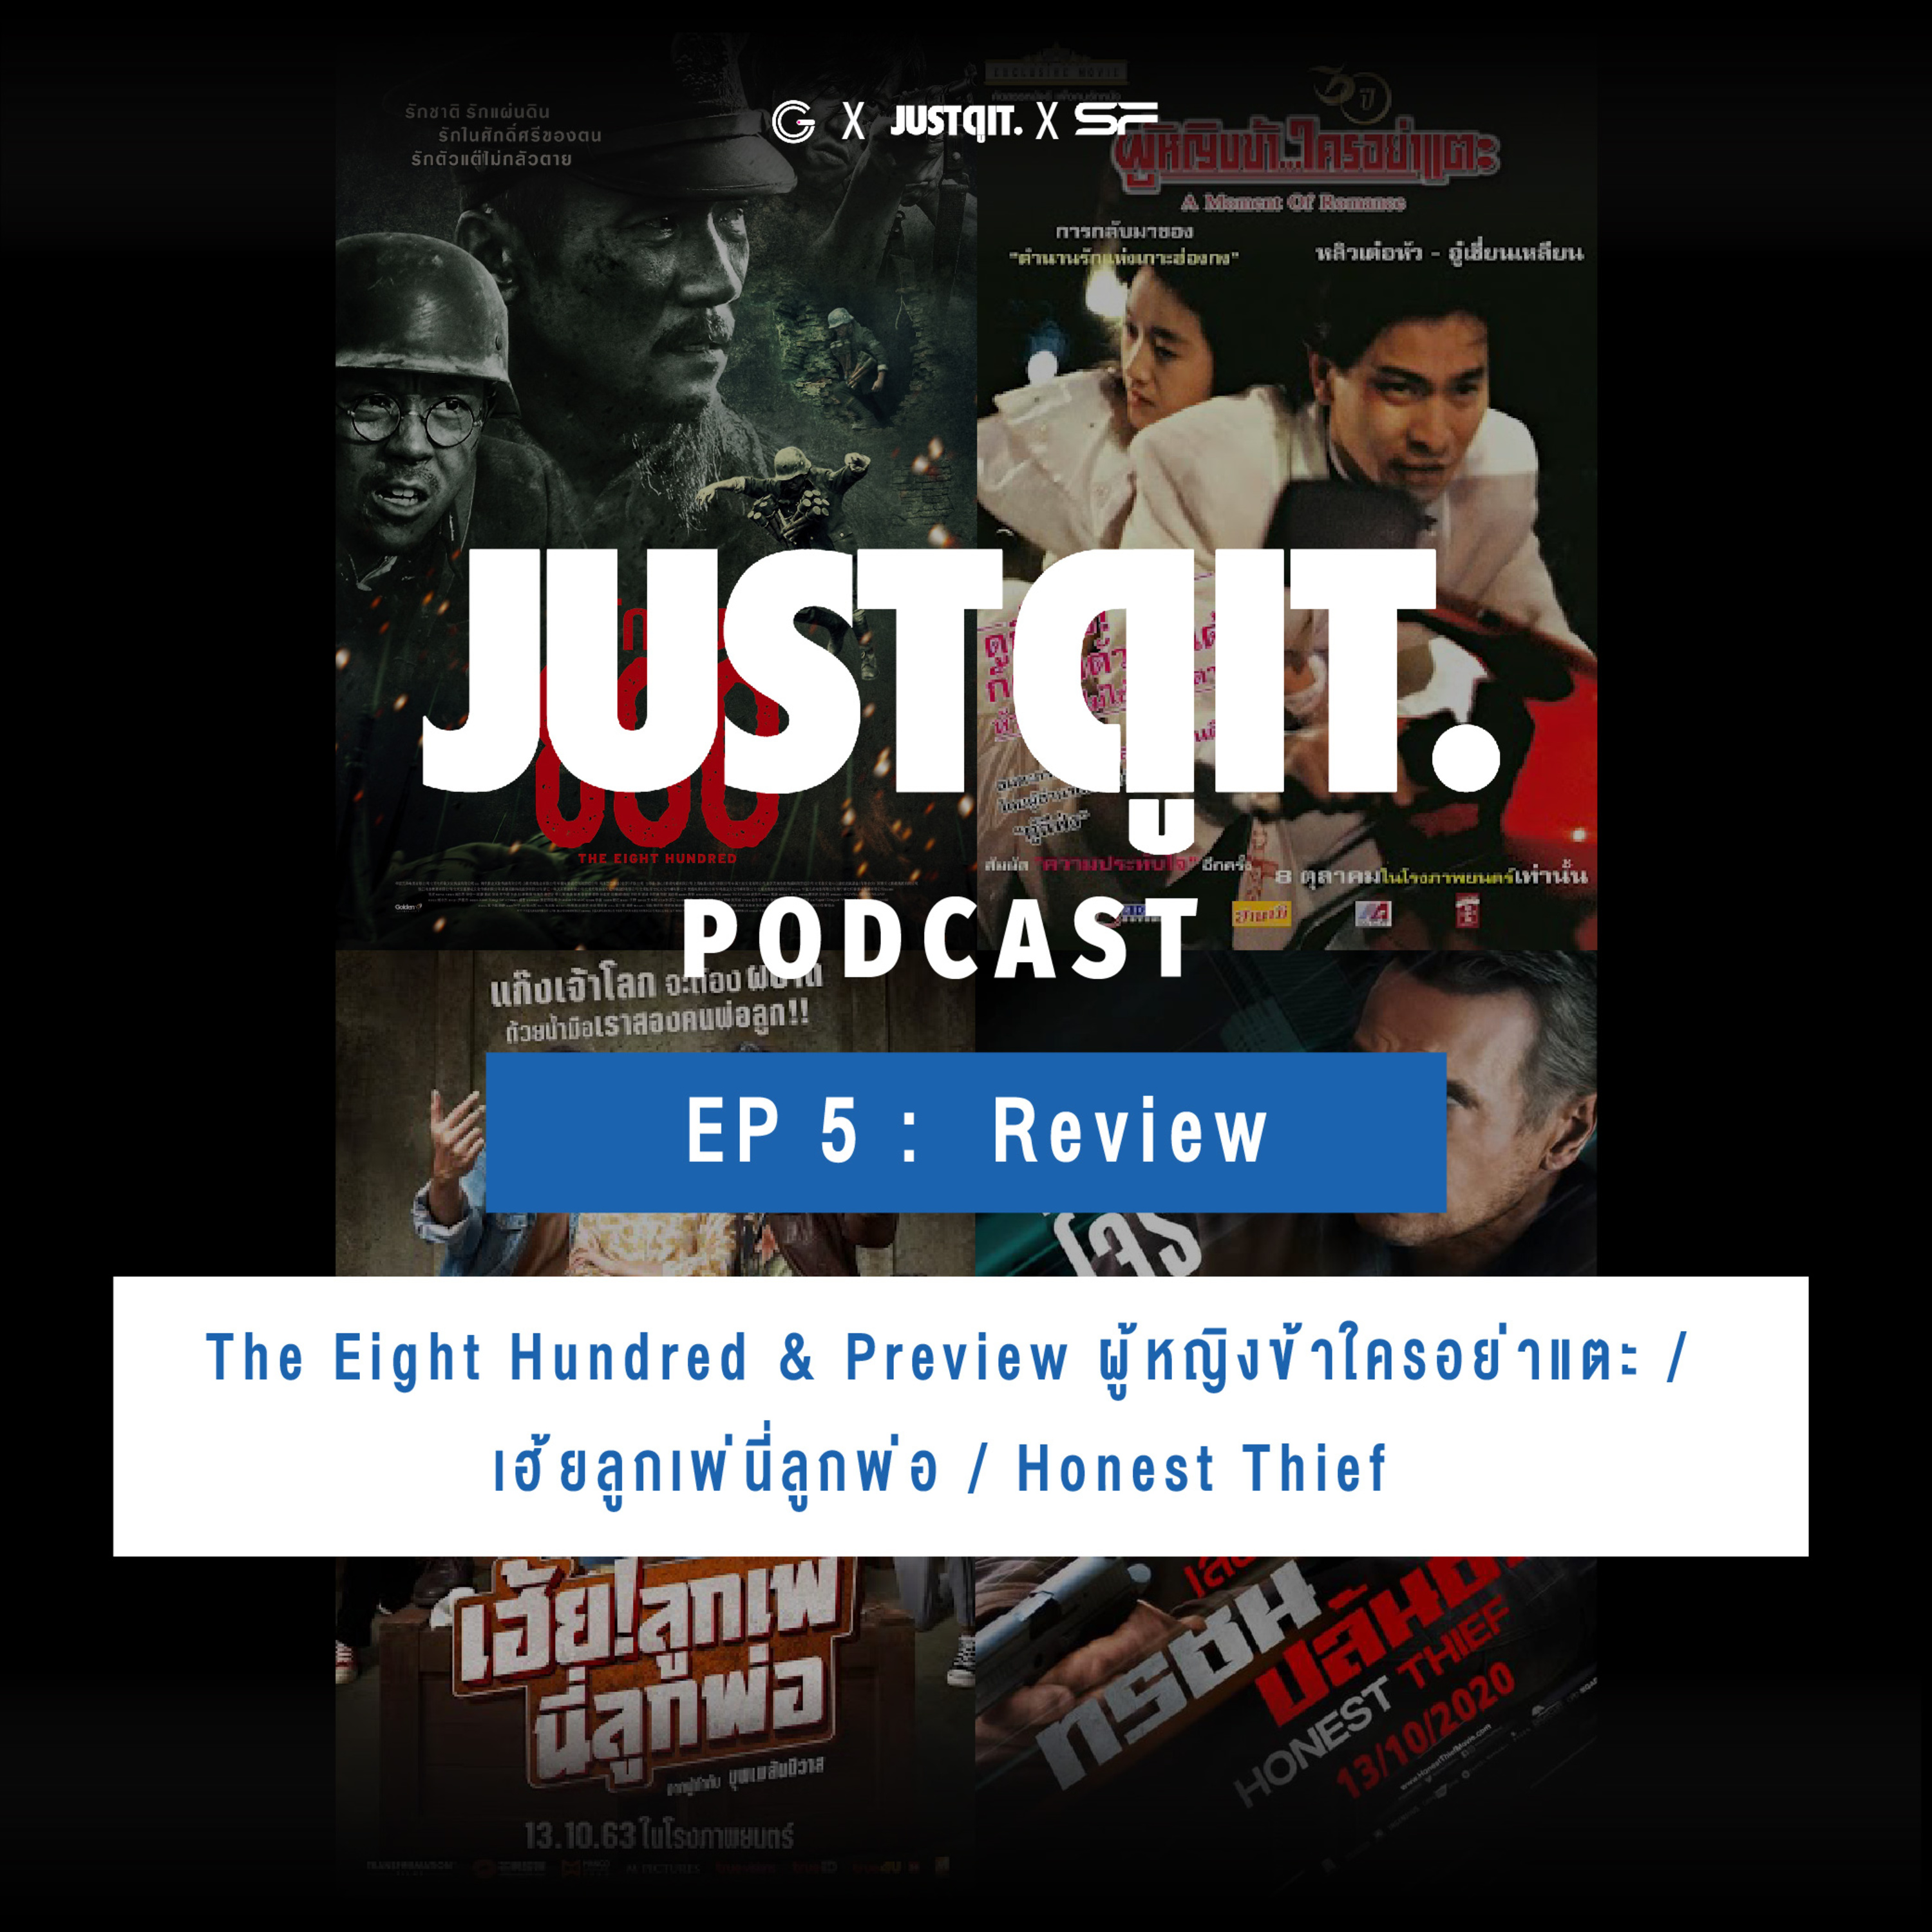 Just ดู it. podcast ep5 : Review The Eight Hundred & Preview ผู้หญิงข้าใครอย่าแตะ / เฮ้ยลูกเพ่นี่ลูกพ่อ / Honest Thief